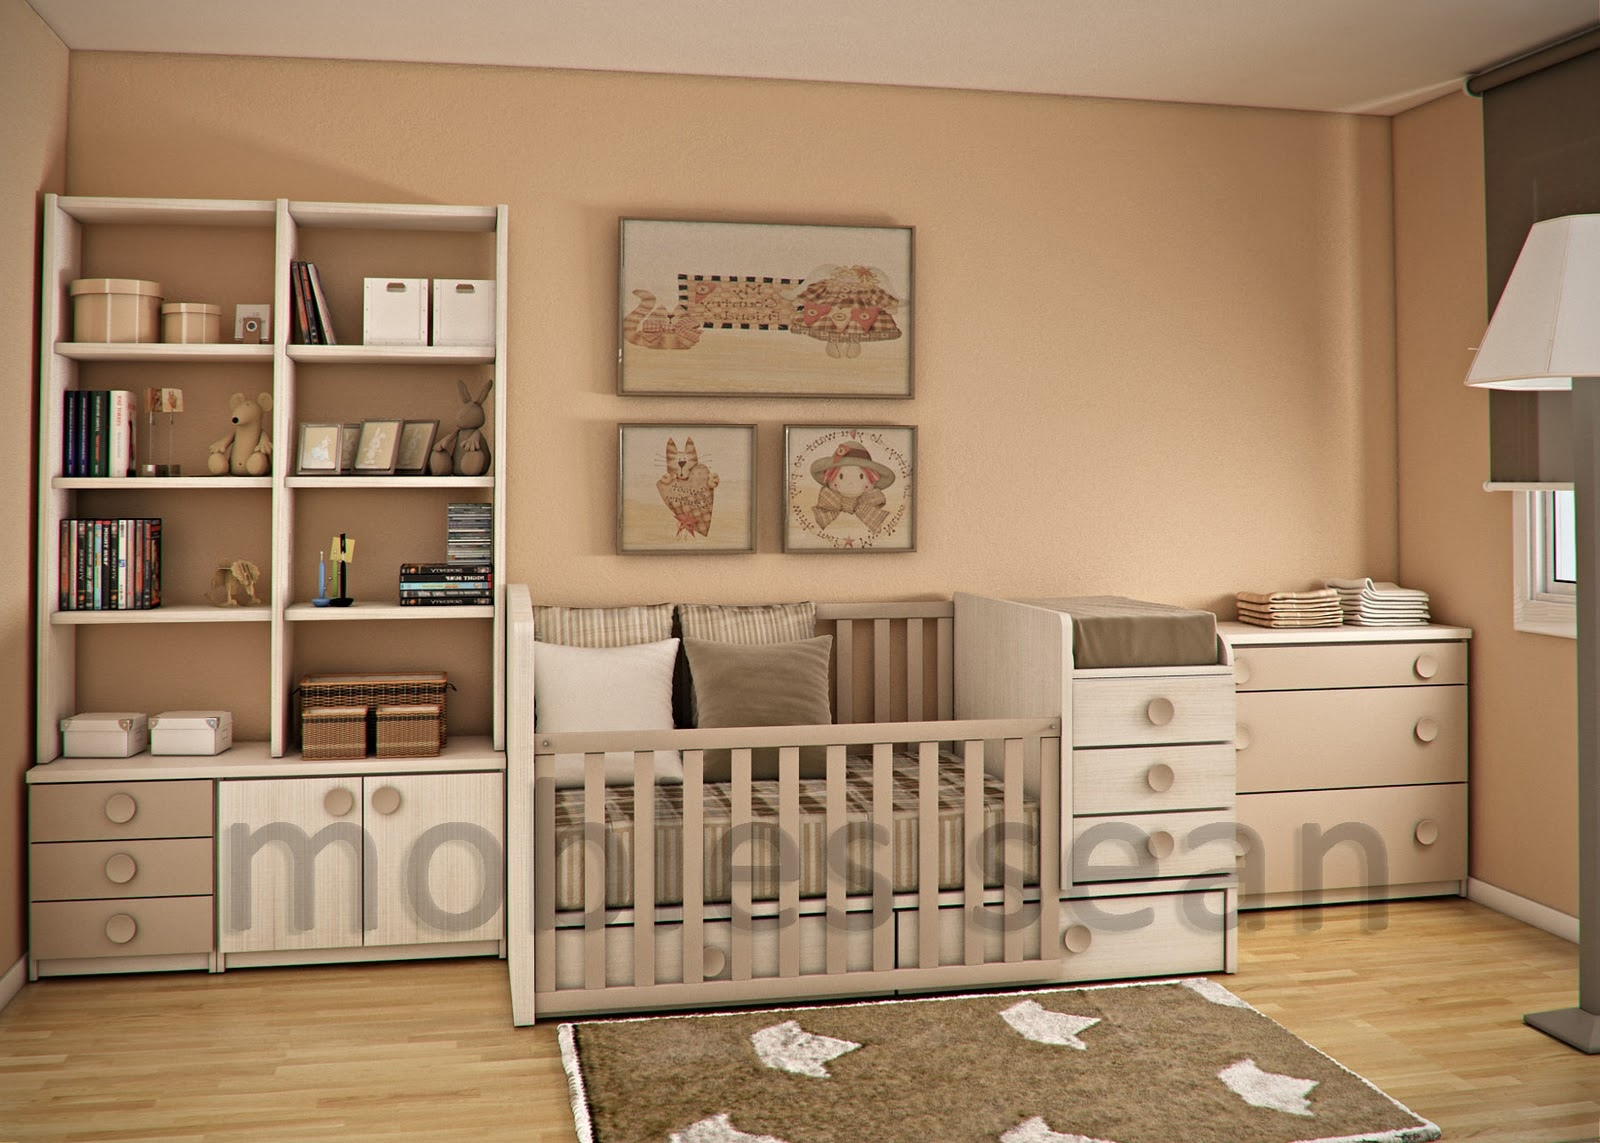 Space saving designs for small kids' rooms